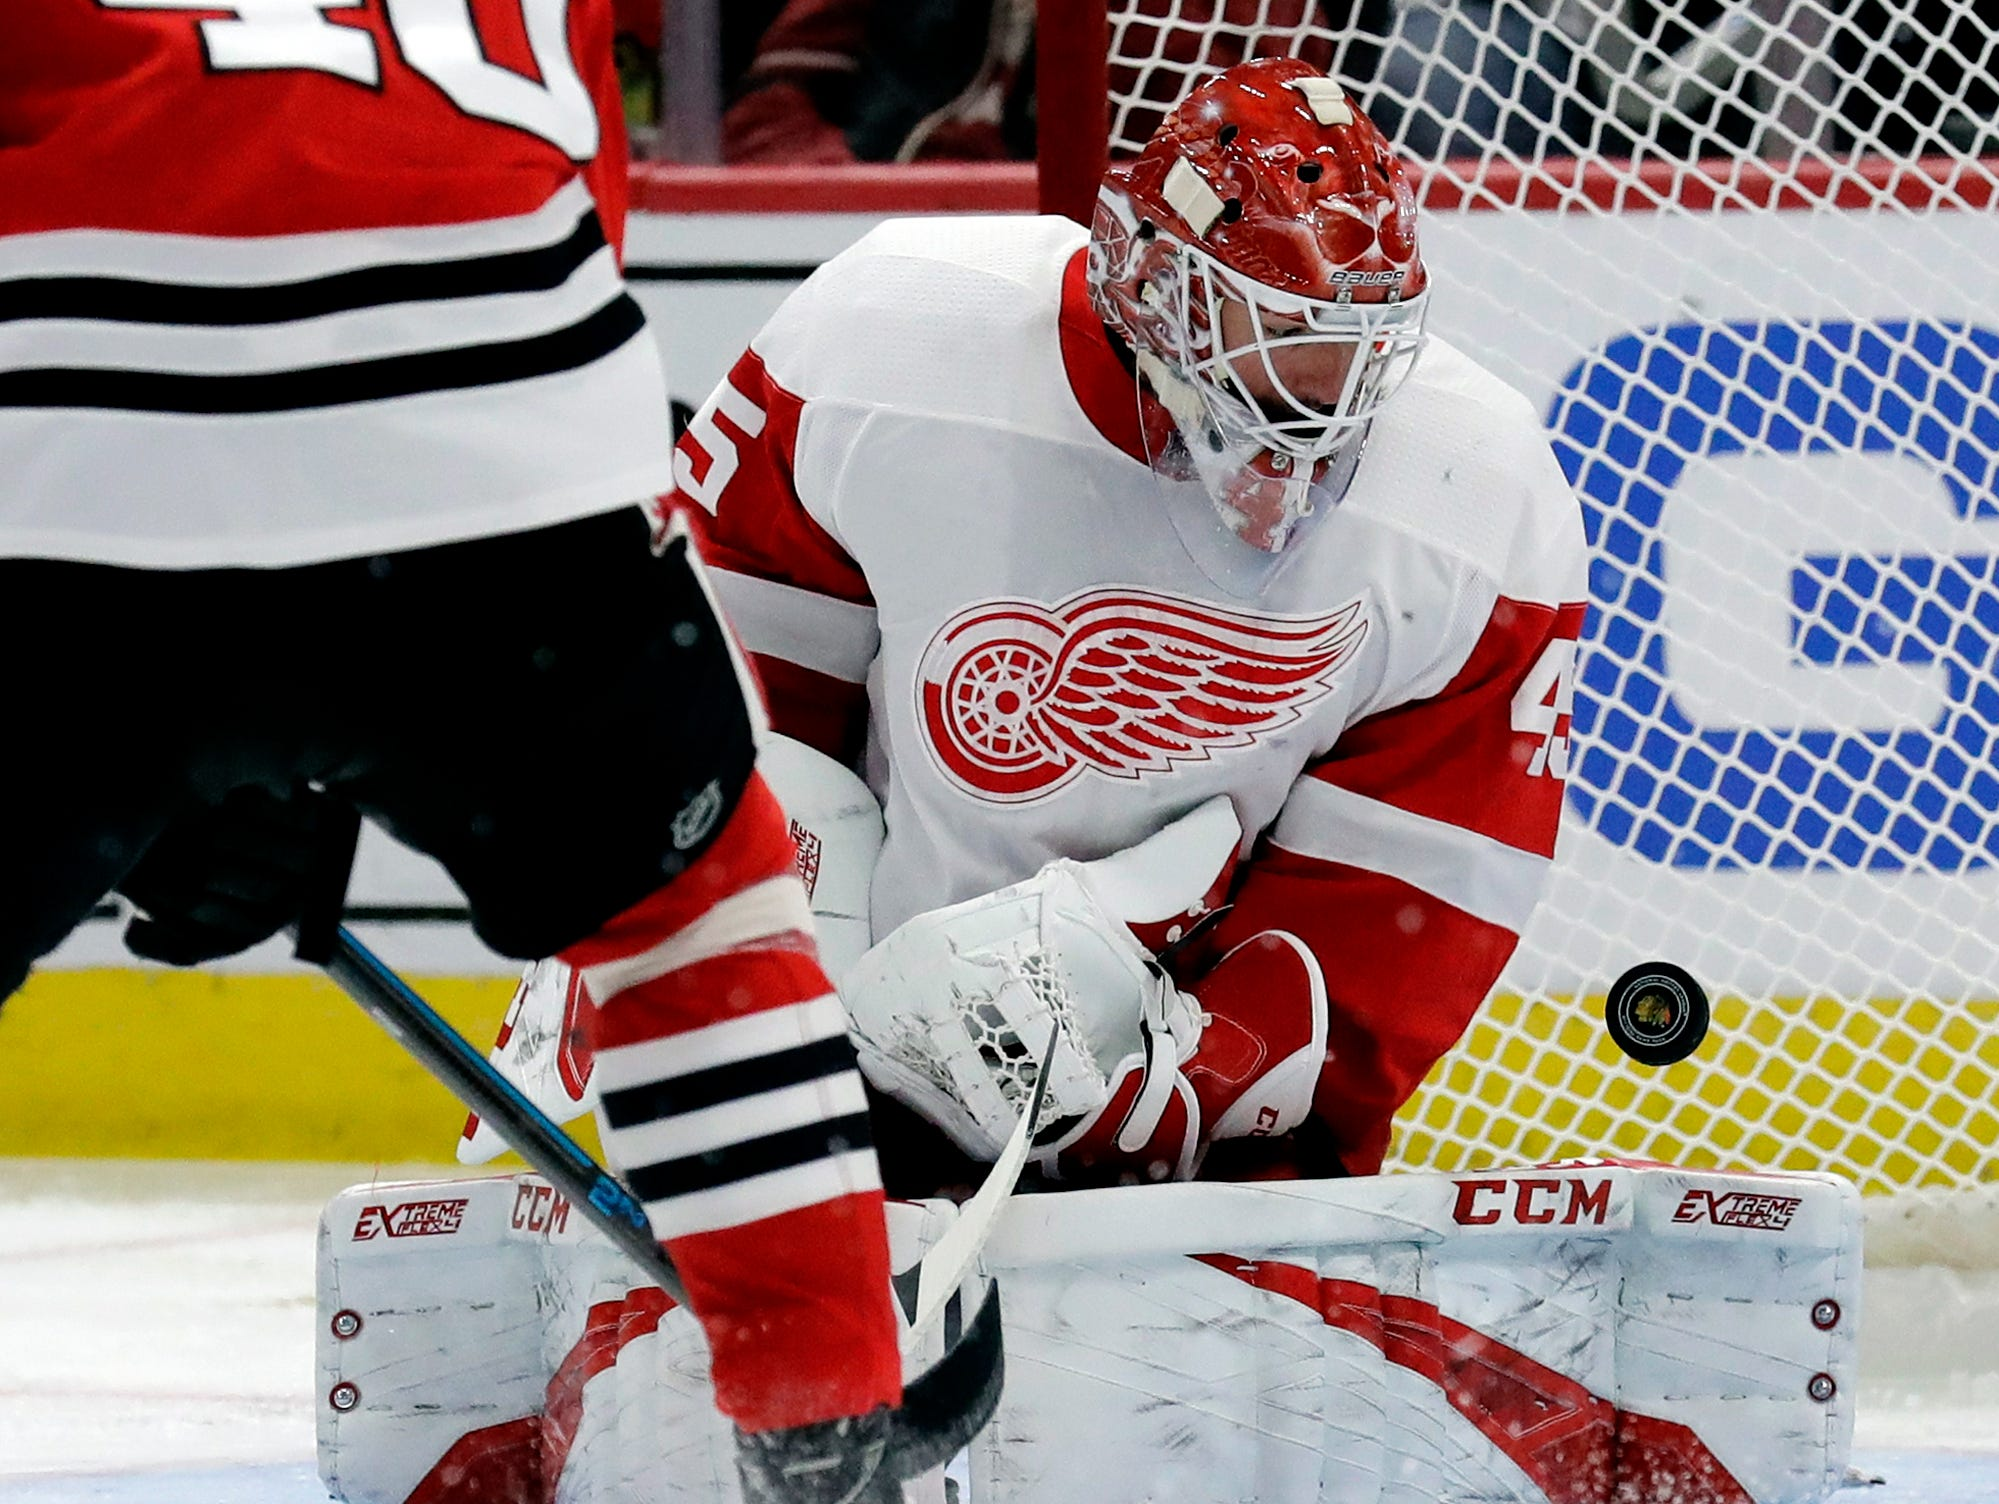 Detroit Red Wings goalie Jonathan Bernier blocks a shot against the Chicago Blackhawks during the second period of an NHL hockey game Sunday, Feb. 10, 2019, in Chicago.  Detroit lost to Chicago 5-2